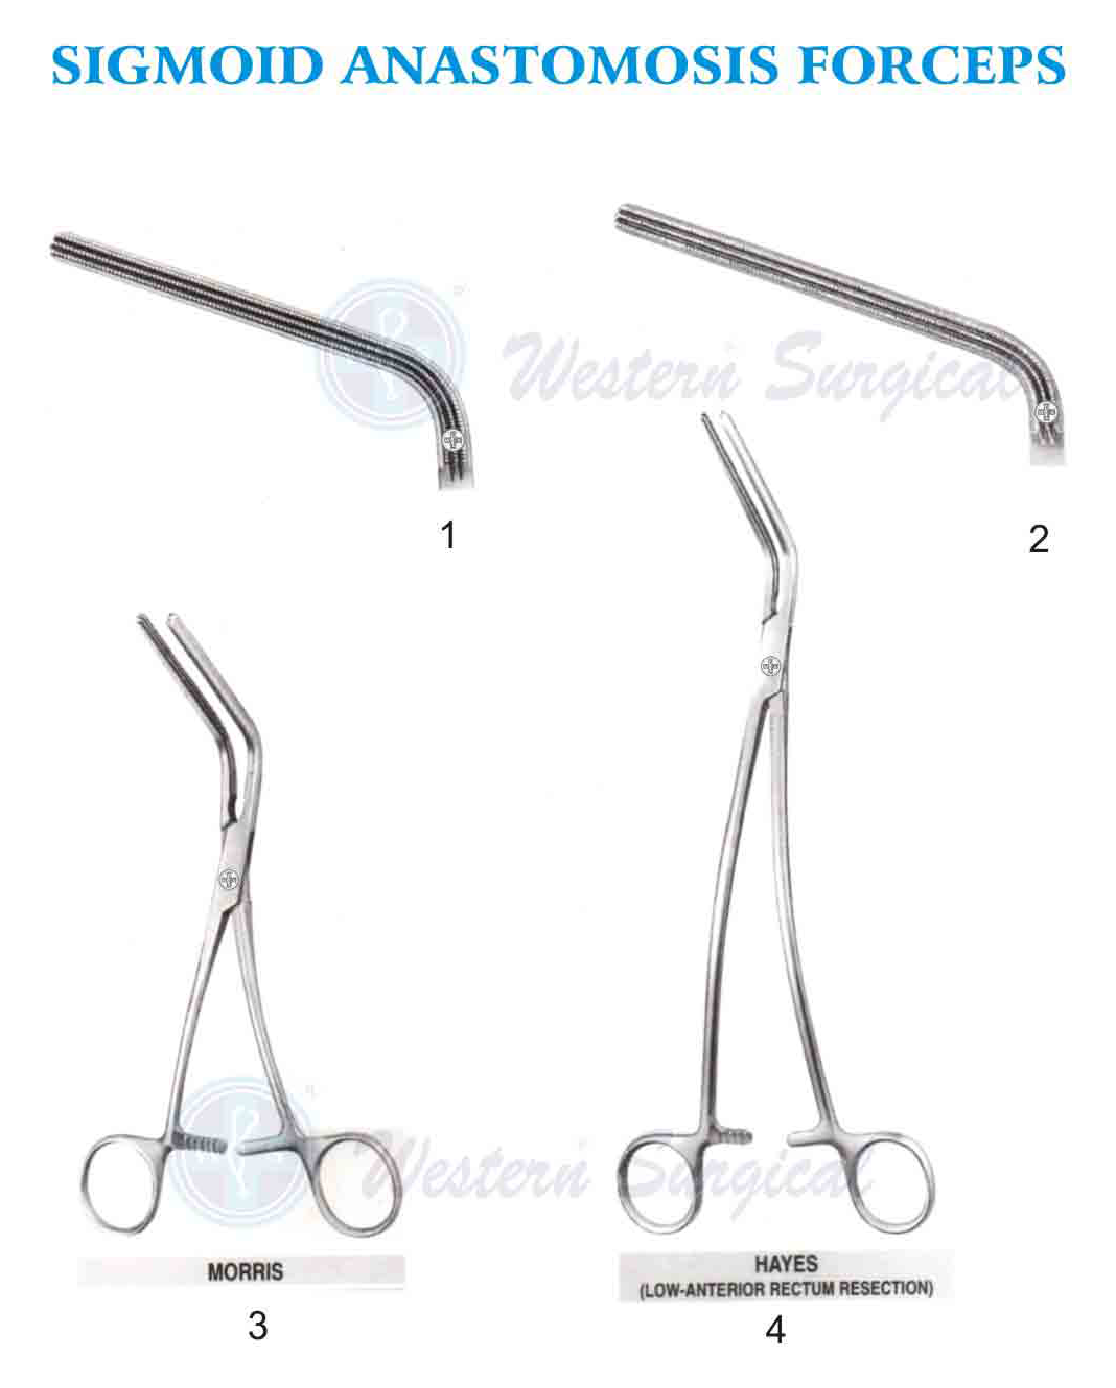 Sigmoid Anastomosis Forceps